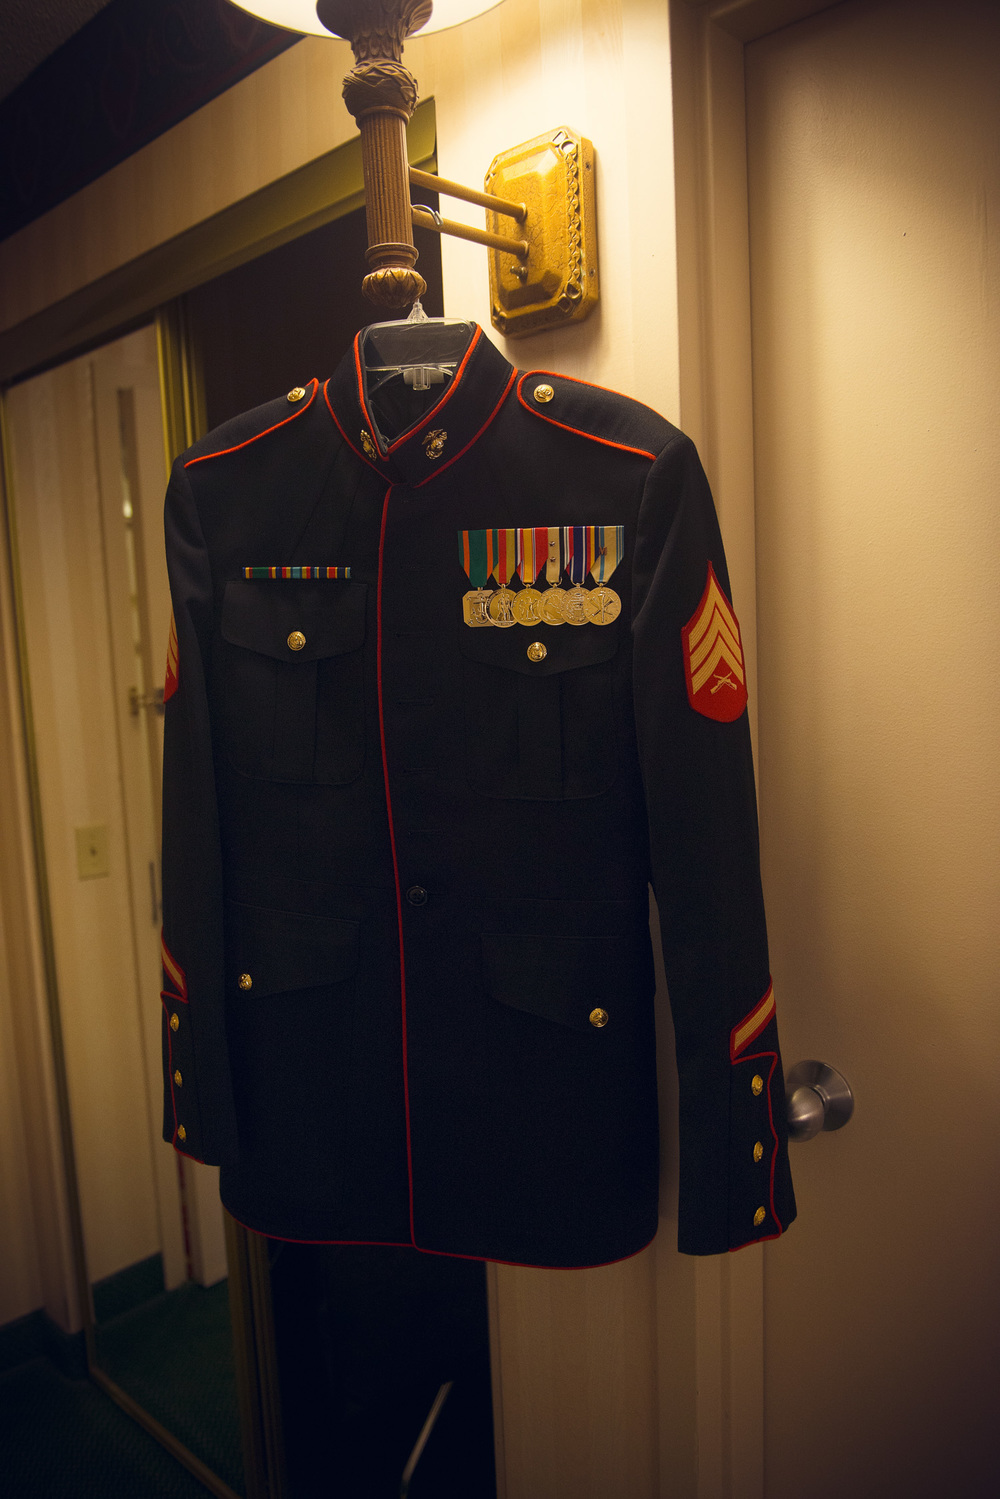 marine jacket armed service American